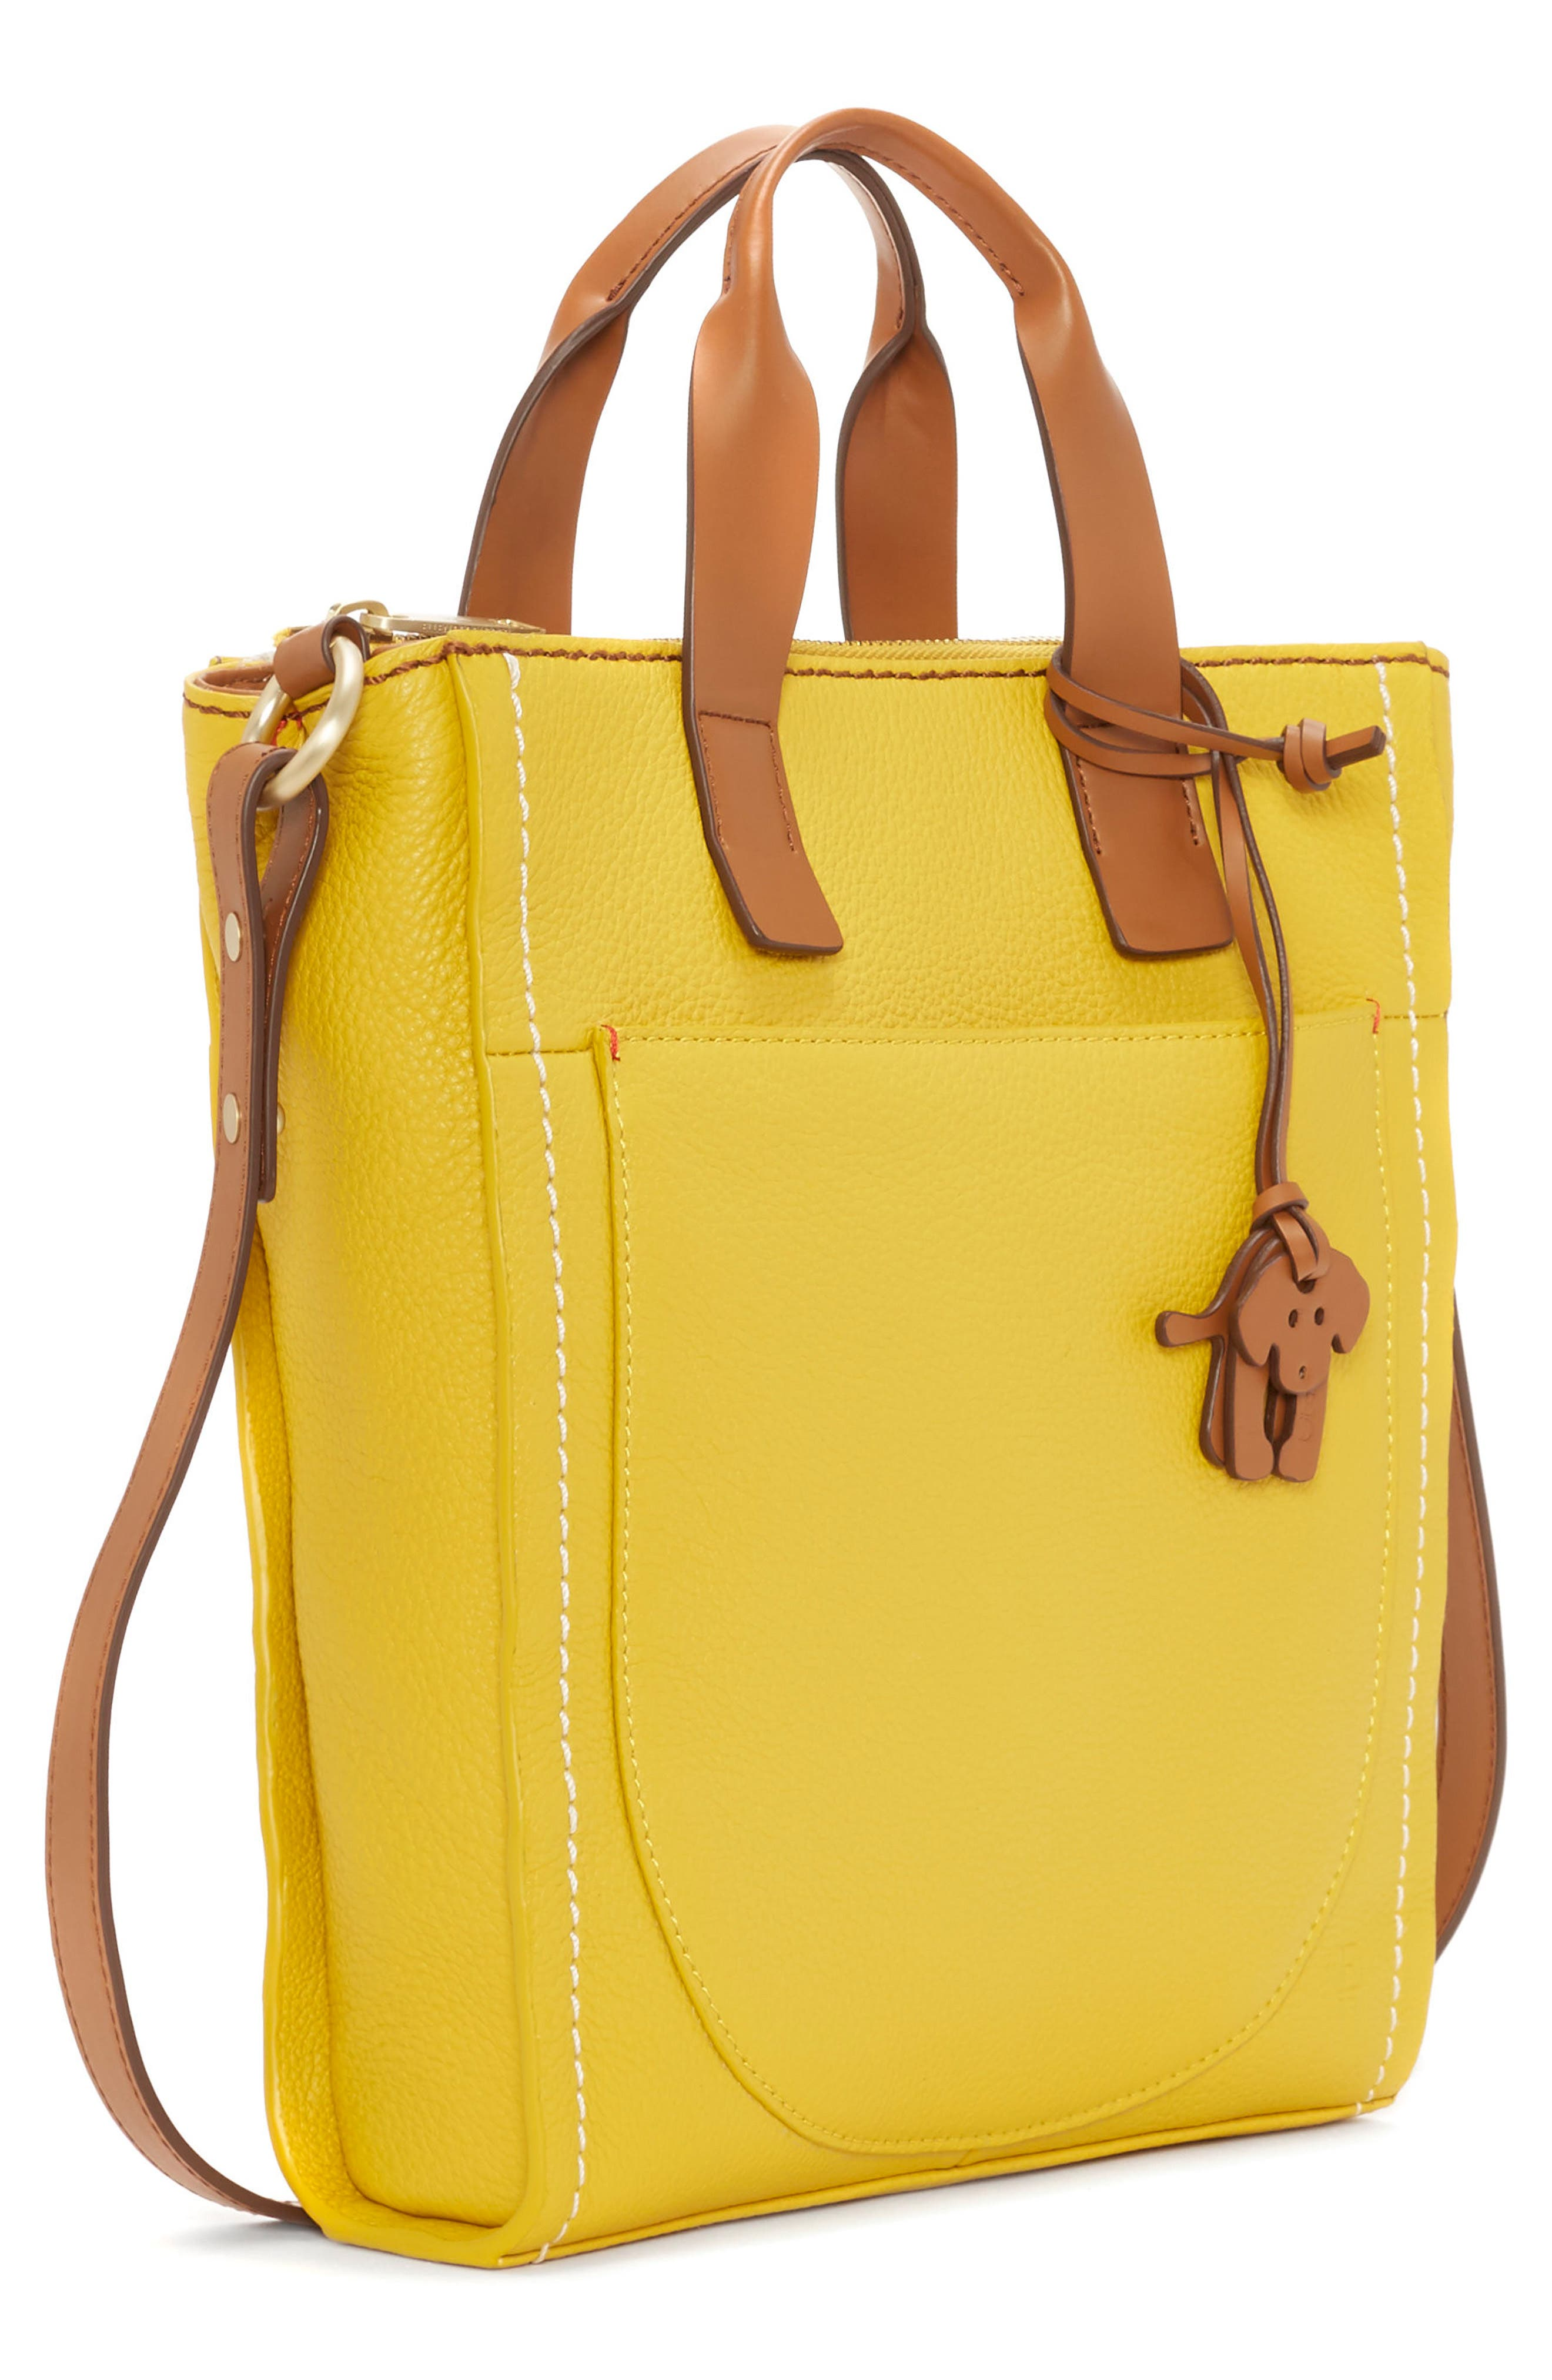 ED ELLEN DEGENERES,                             Small Baja Leather Tote,                             Alternate thumbnail 4, color,                             701